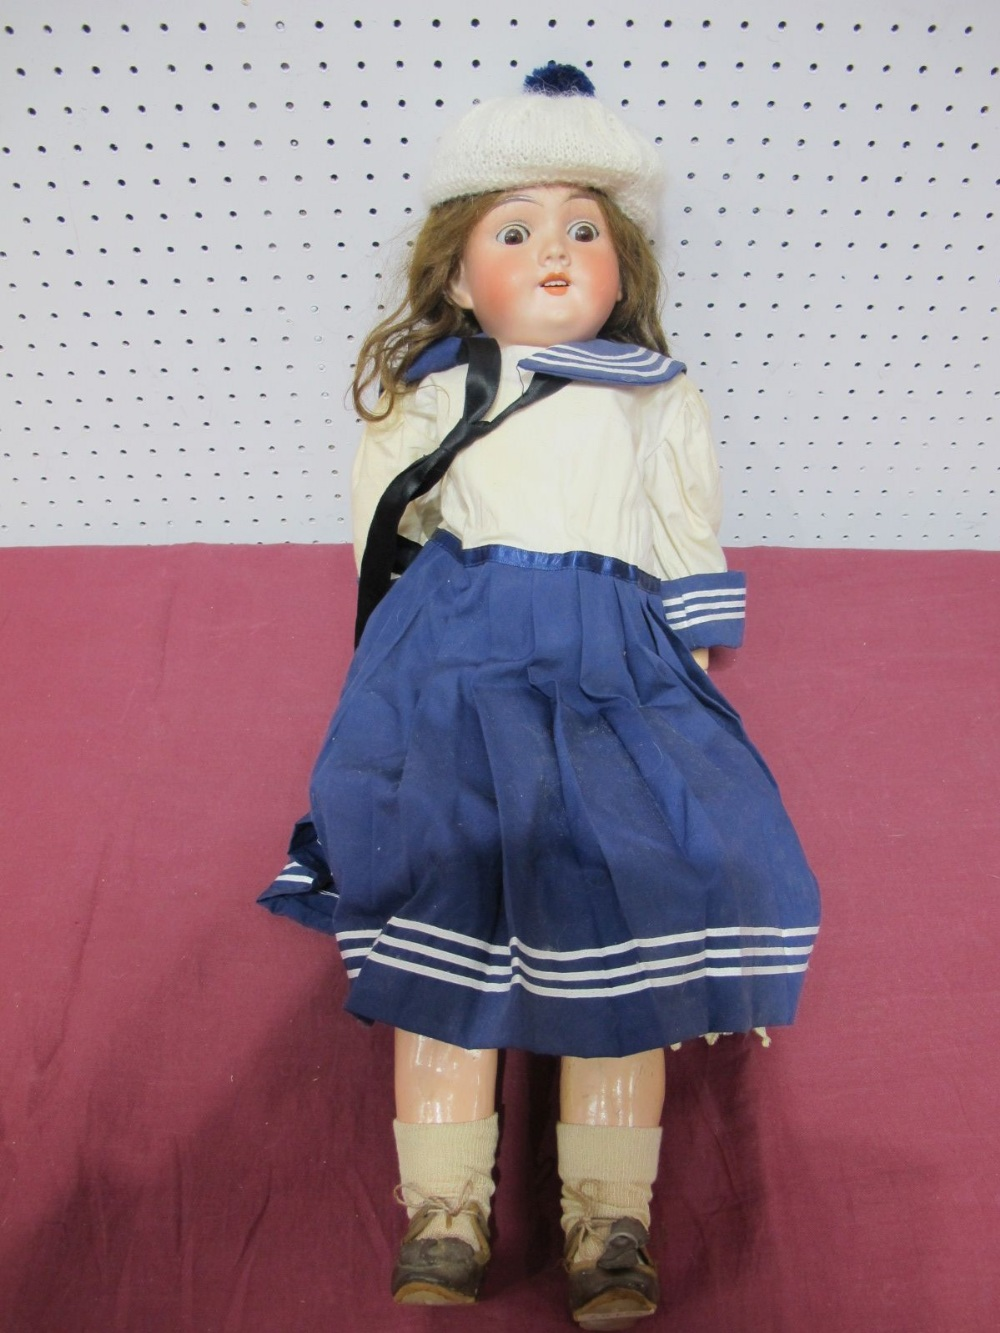 Lot 22 - An Early XX Century Bisque Headed Doll by Max Handwerck of Germany, head stamped 283/285. Sleepy